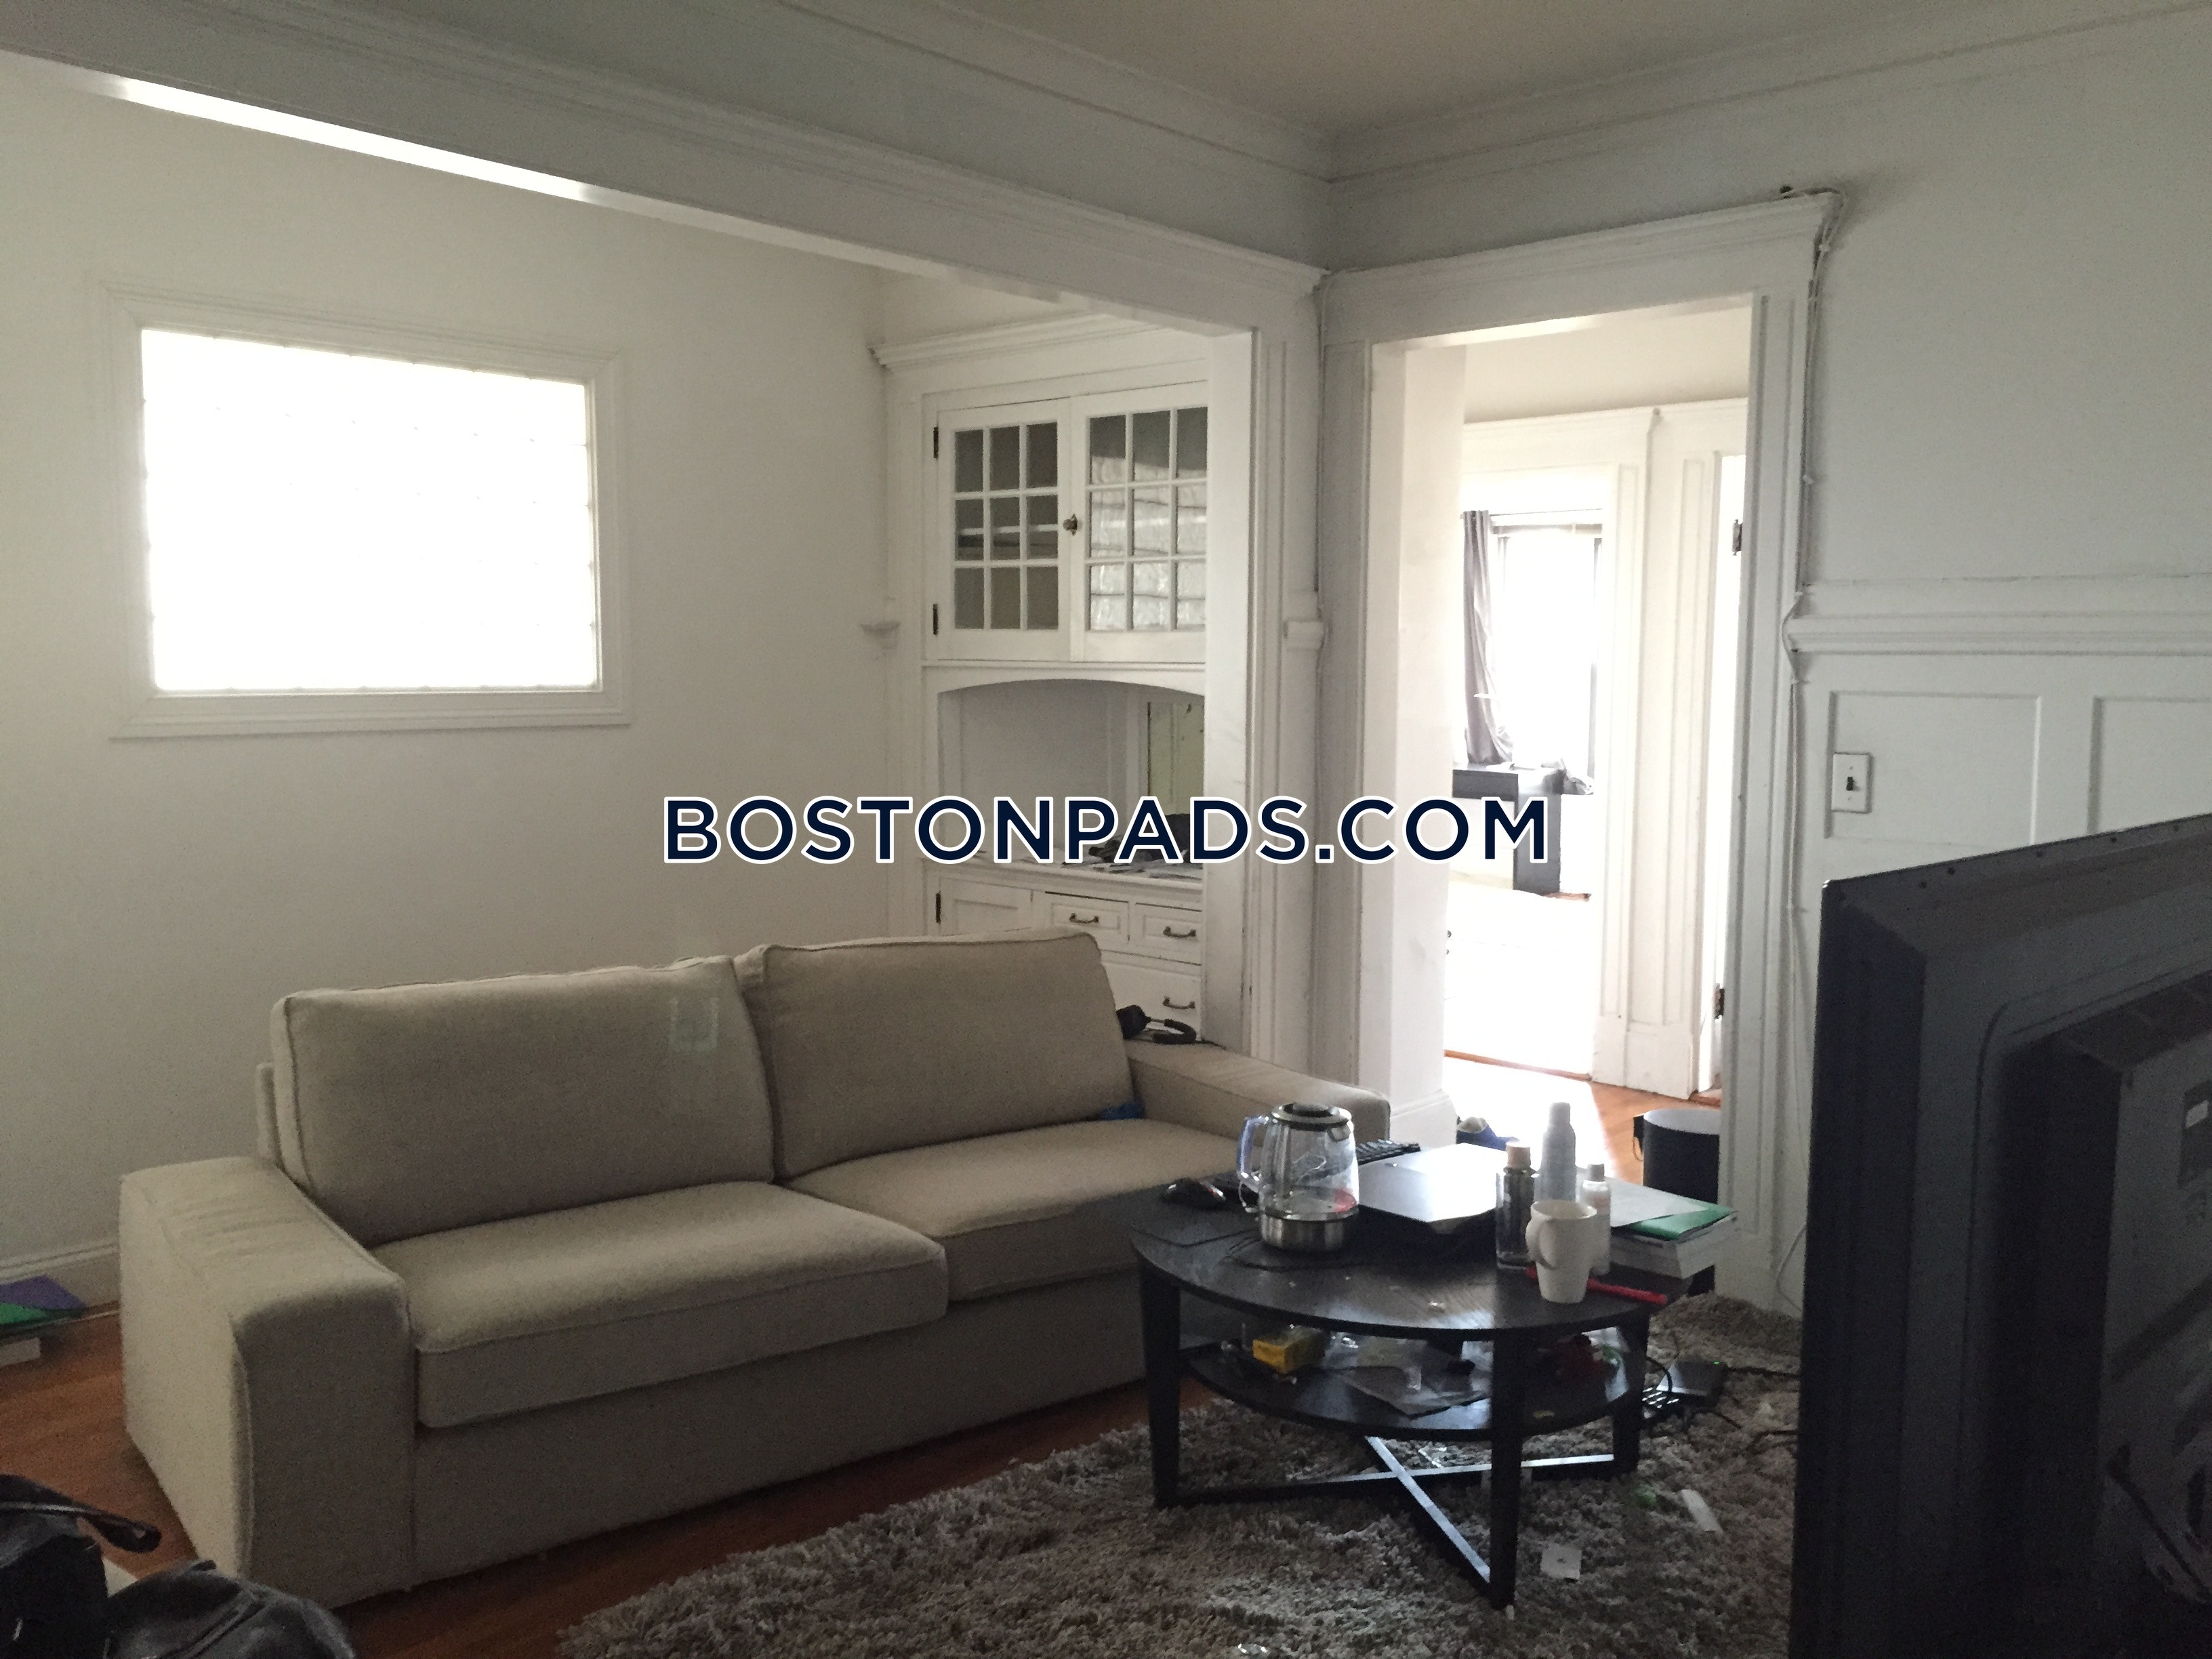 Outstanding 3 bedroom apartment on Park Drive!!! - Boston - Fenway/kenmore $4,295